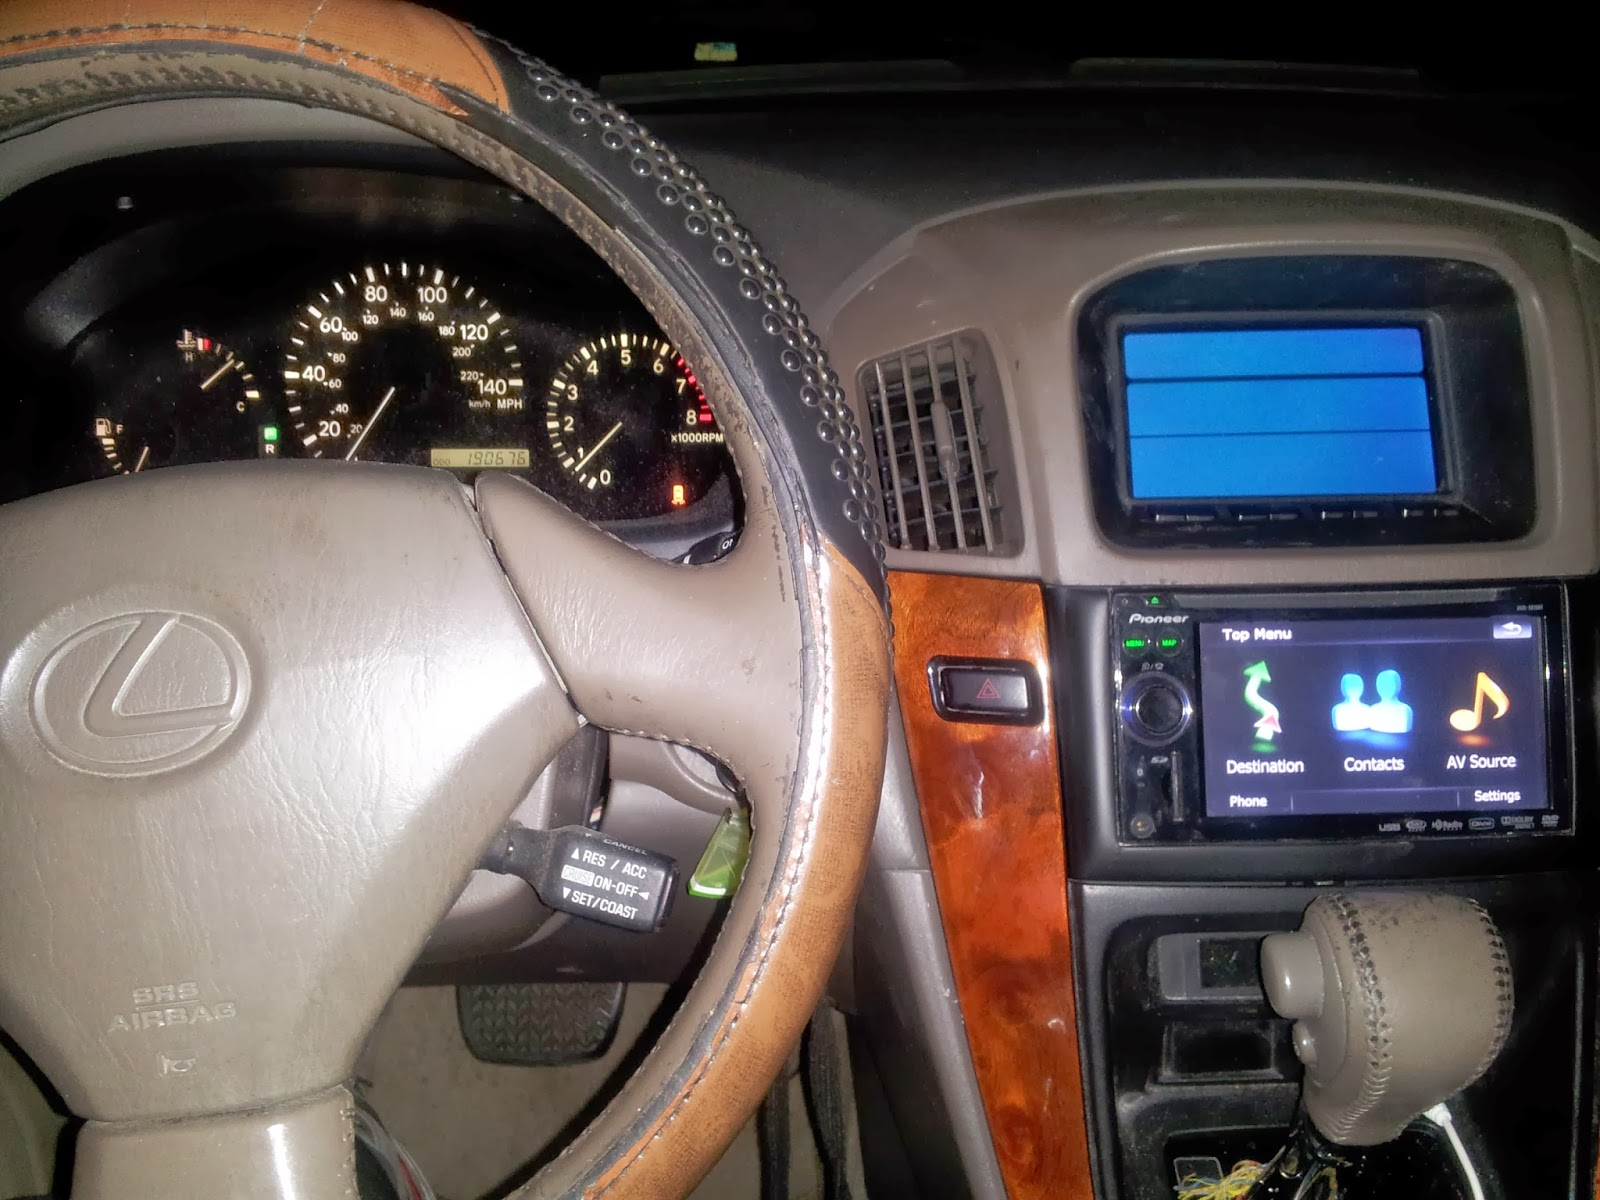 medium resolution of lexus rx 300 there is no kit available for this vehicle we